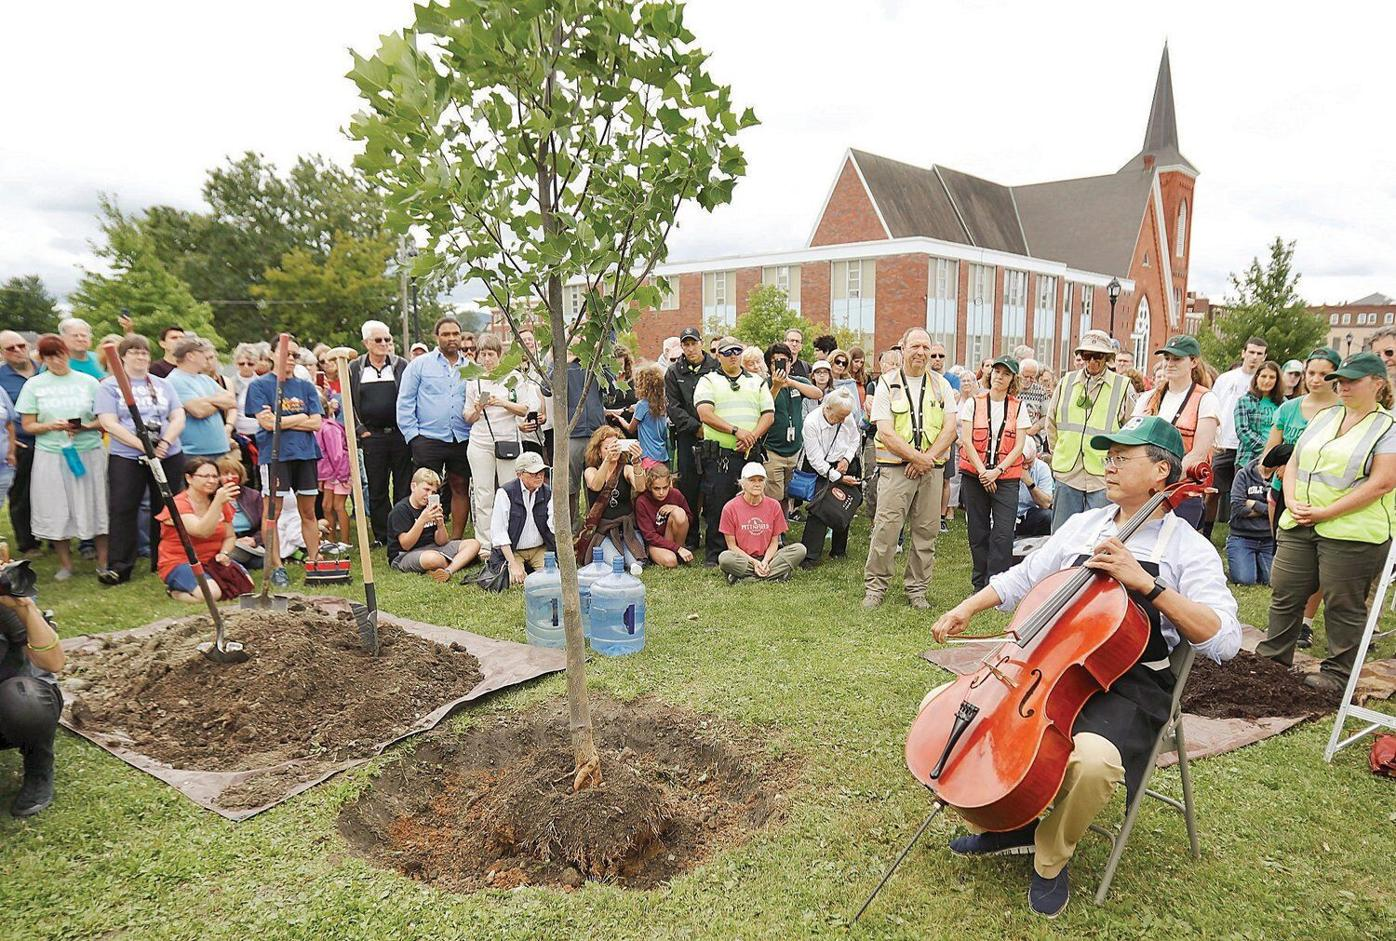 At Pittsfield's 'Day of Action,' Yo-Yo Ma brings a sense of community to the table